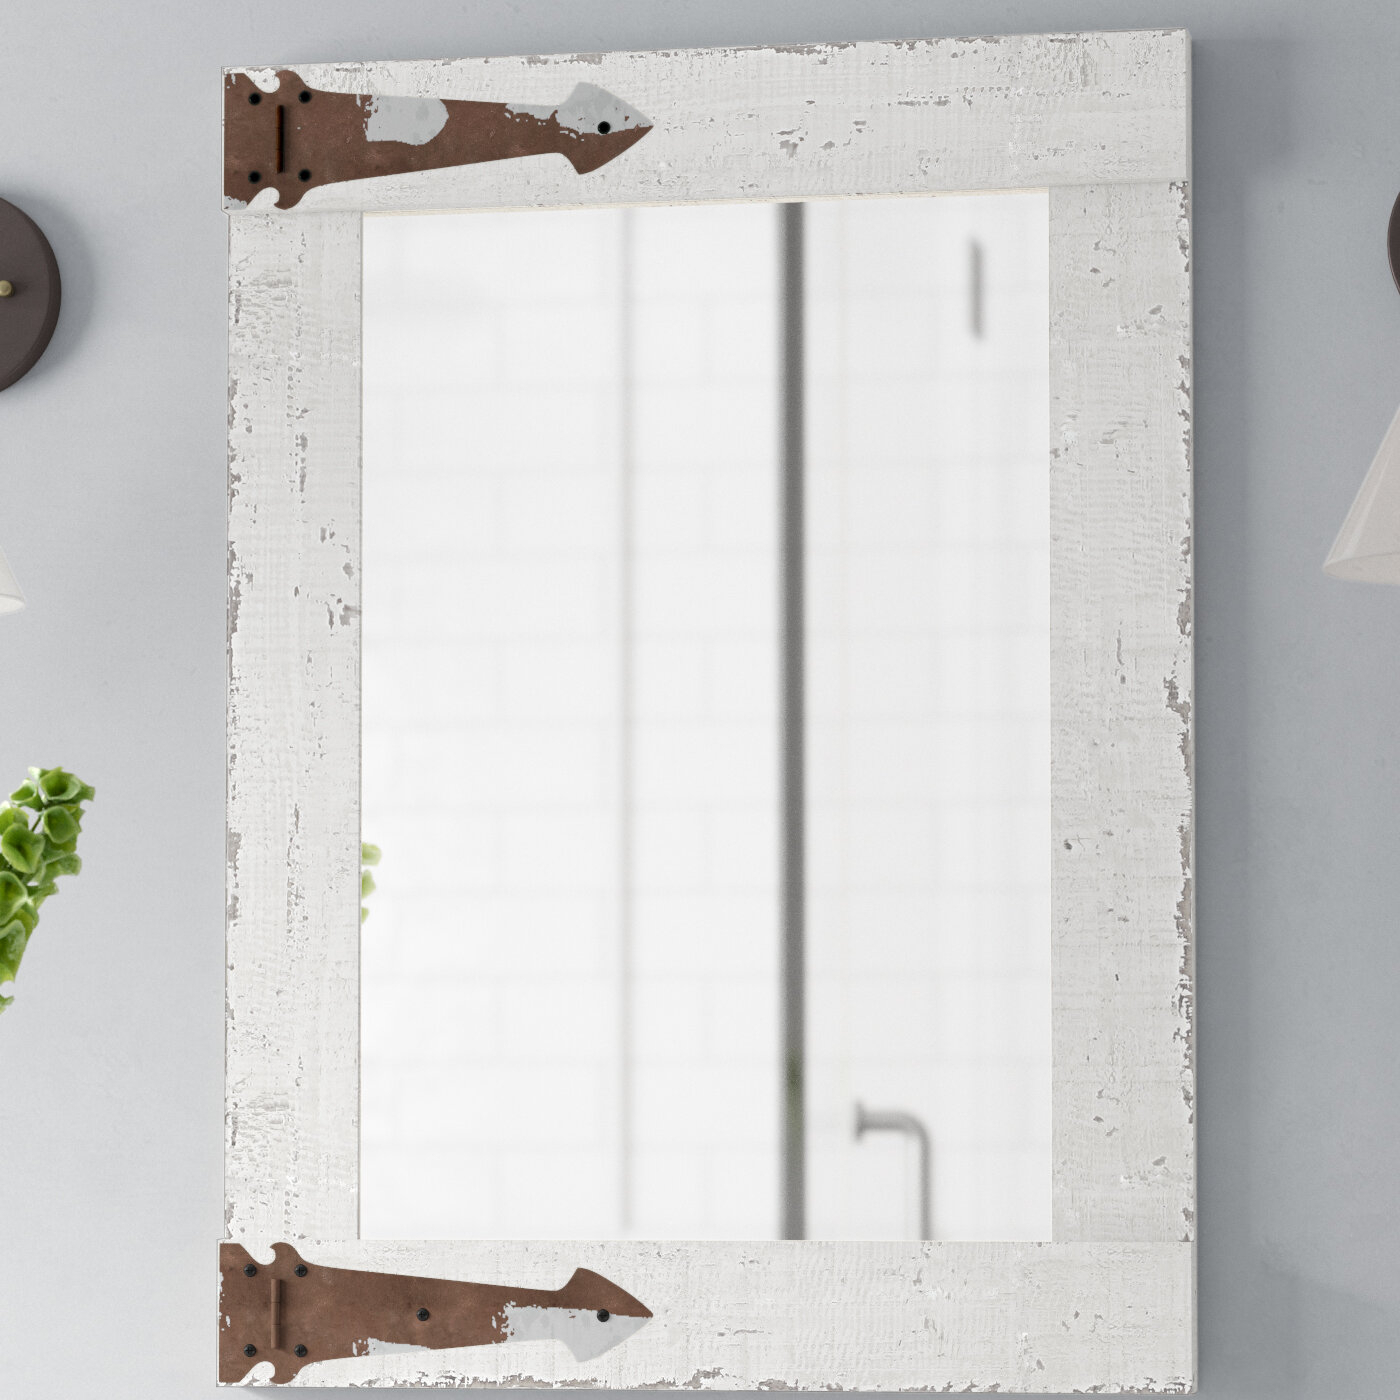 Kist Farmhouse Wall Mirror & Reviews | Birch Lane With Epinal Shabby Elegance Wall Mirrors (Gallery 26 of 30)